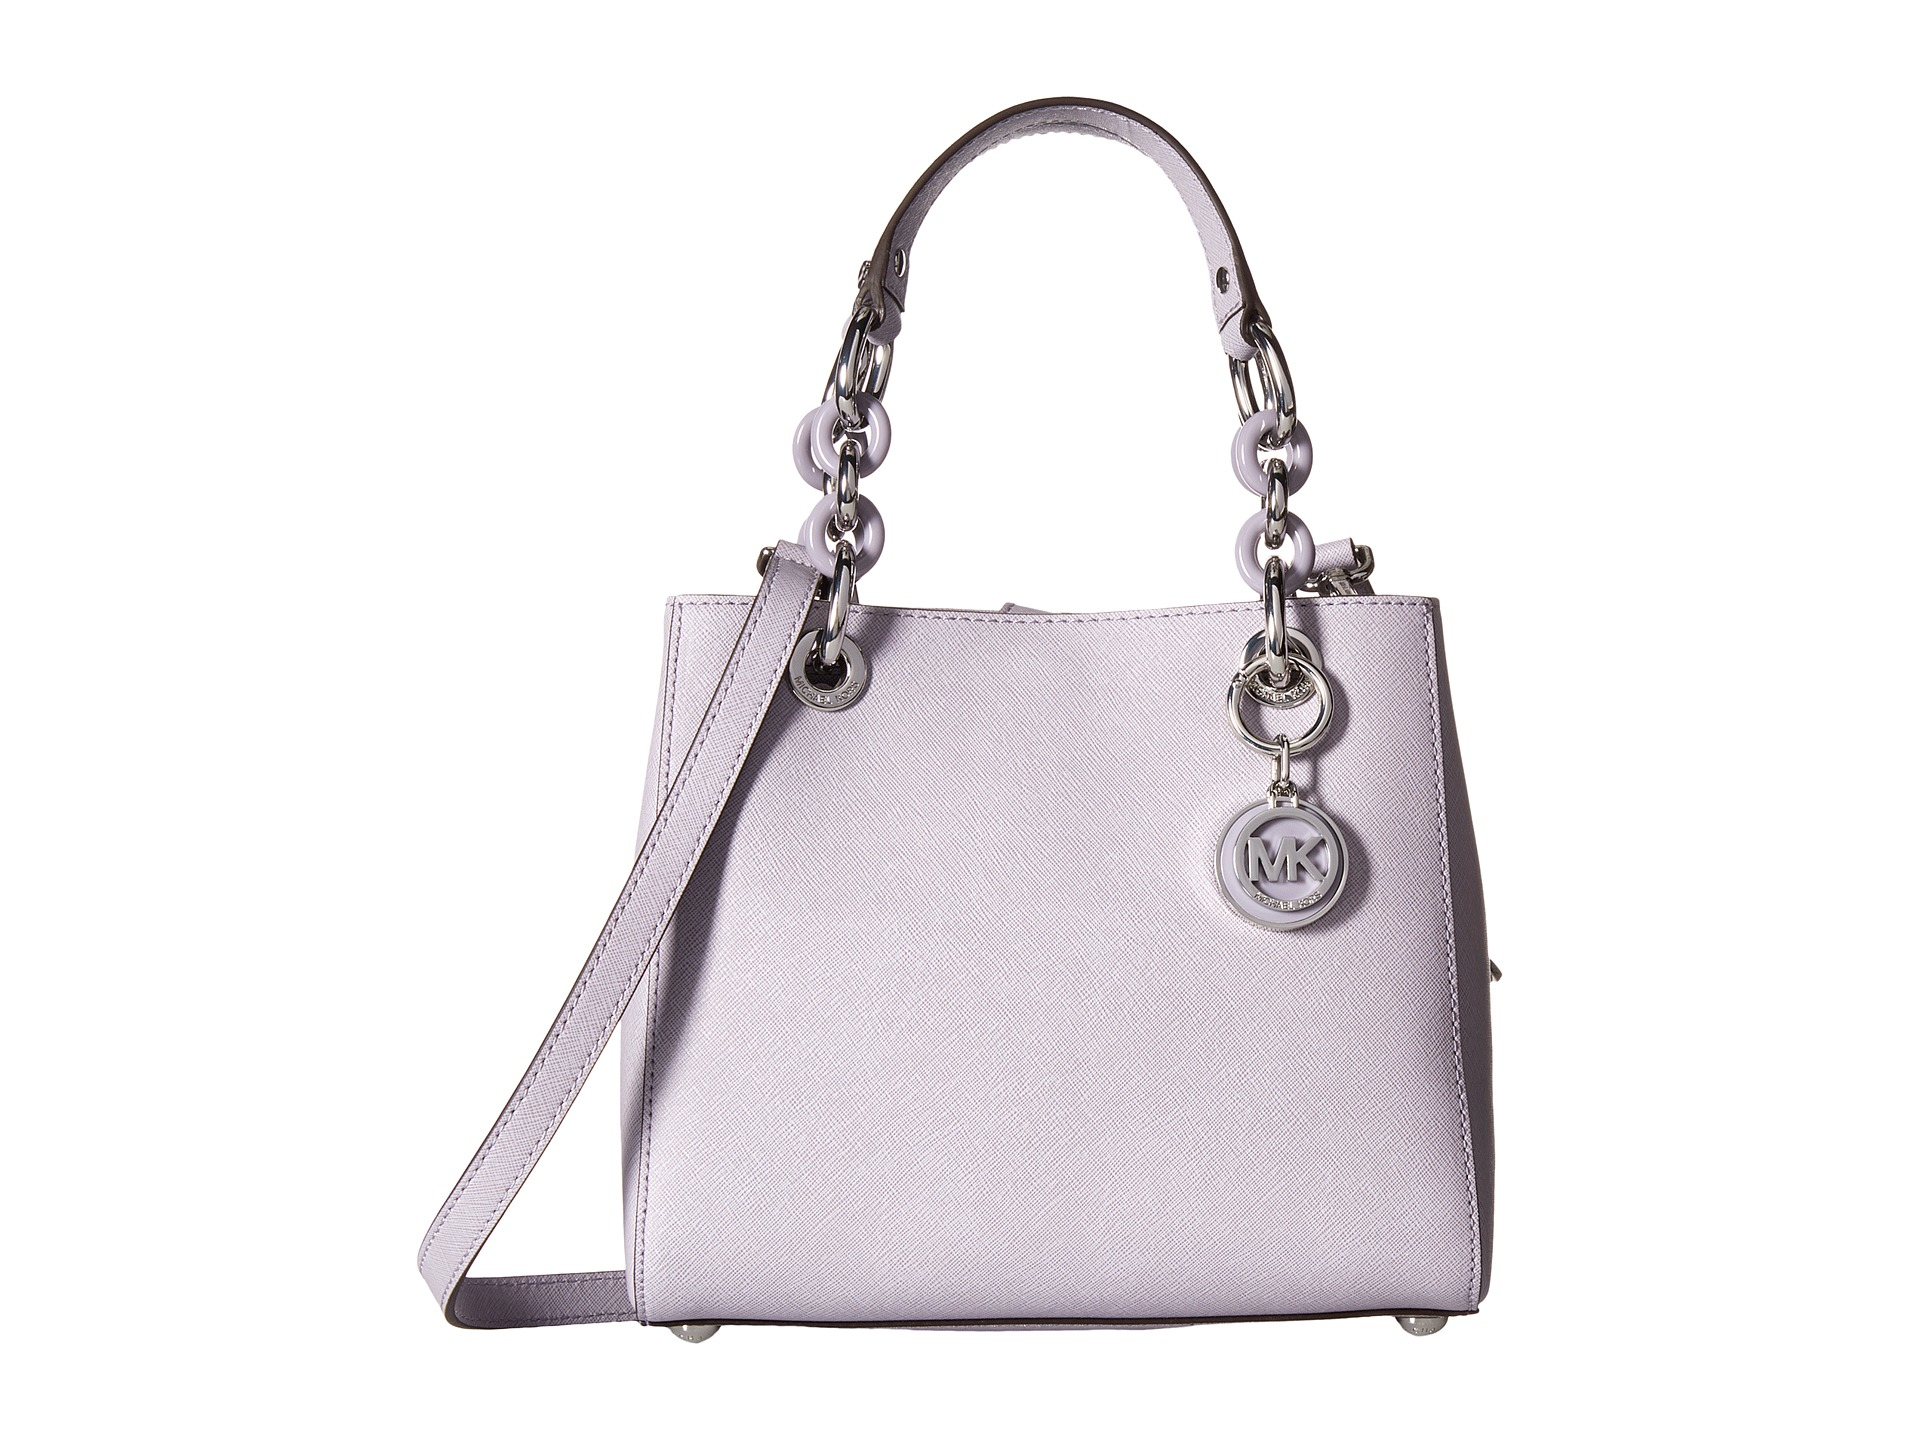 9679b052f287 Gallery. Previously sold at: Zappos · Women's Michael By Michael Kors  Cynthia